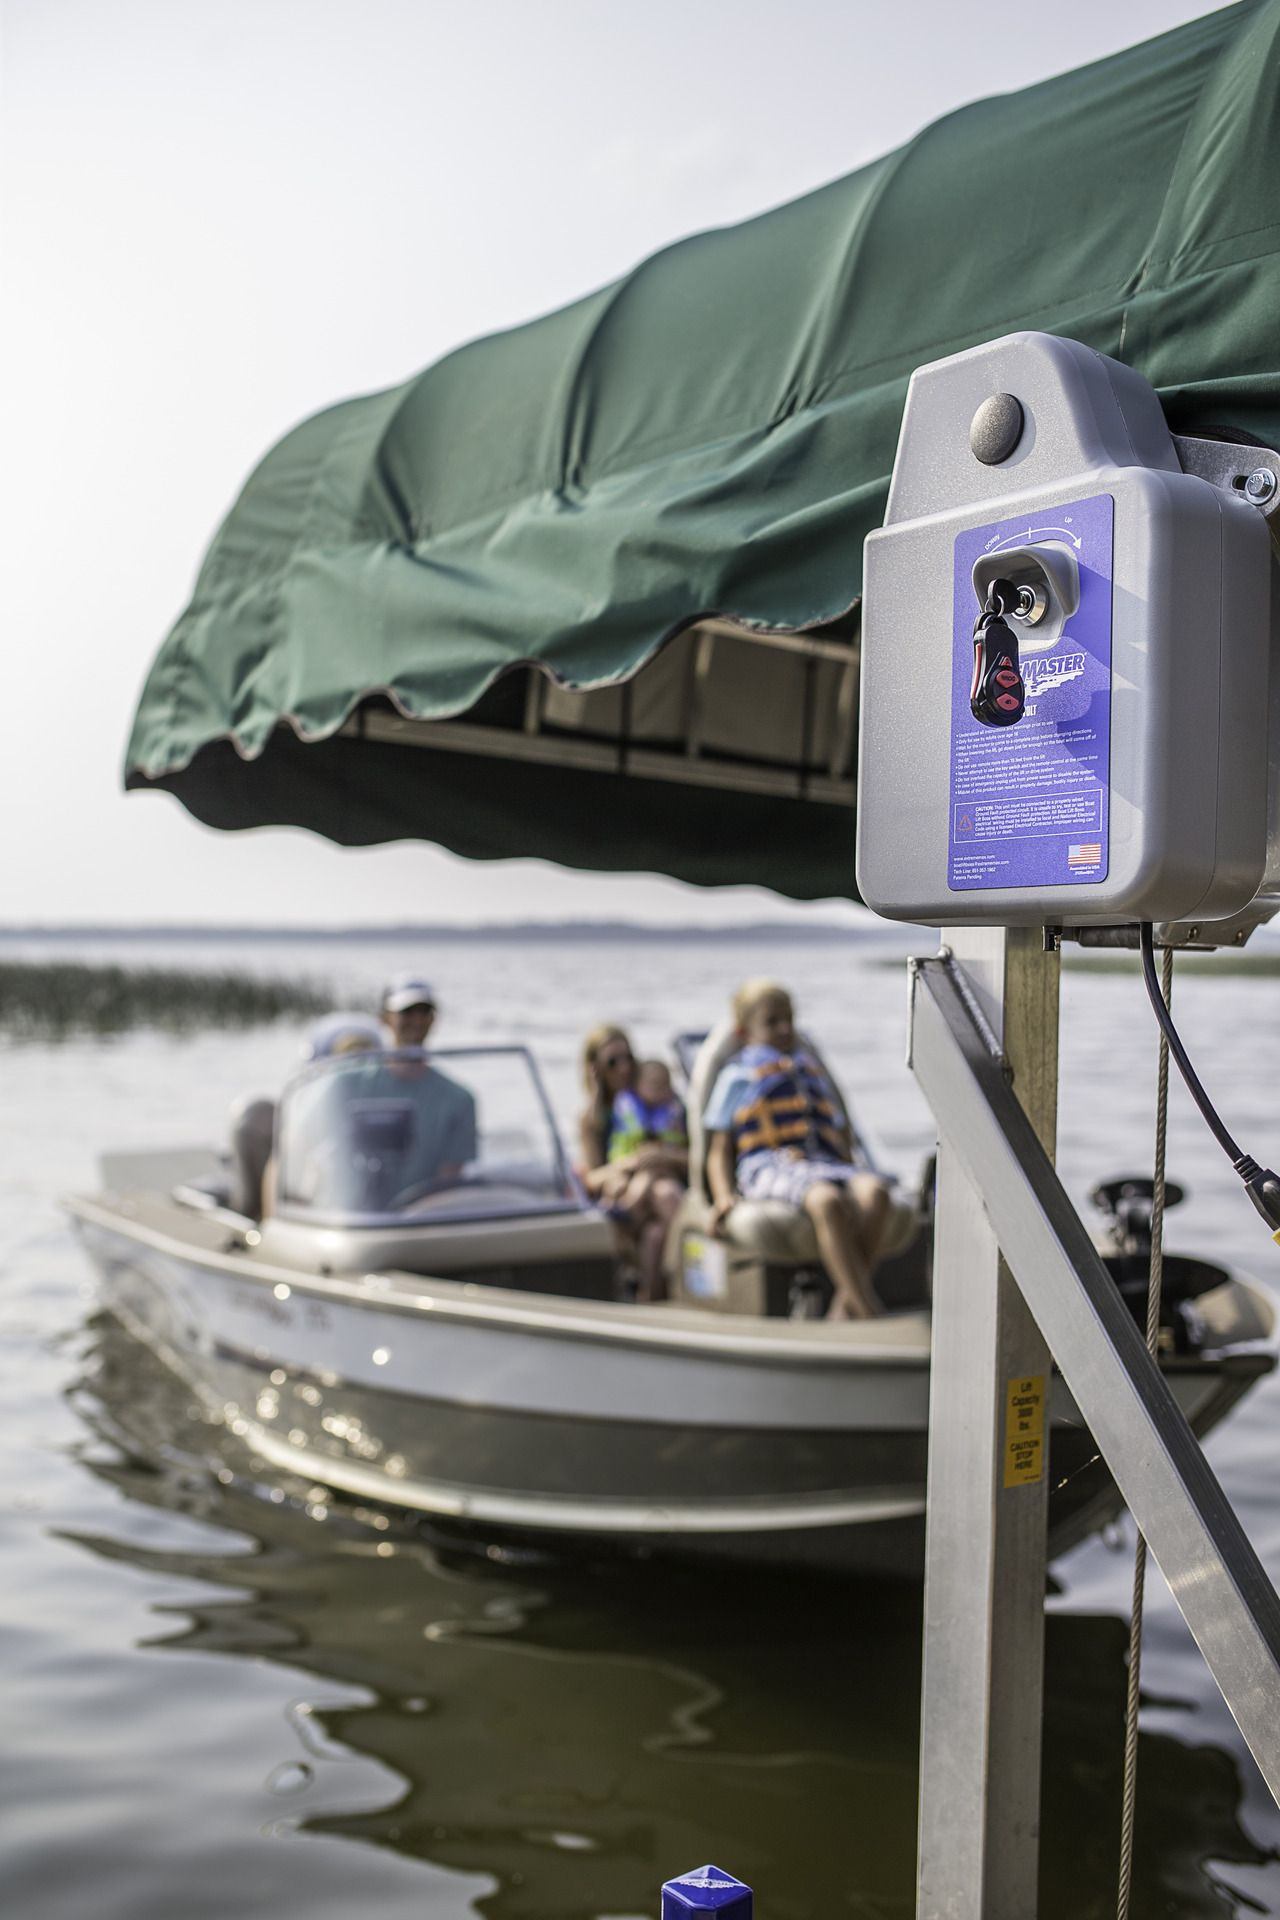 Add a new level of convenience to your boating experience